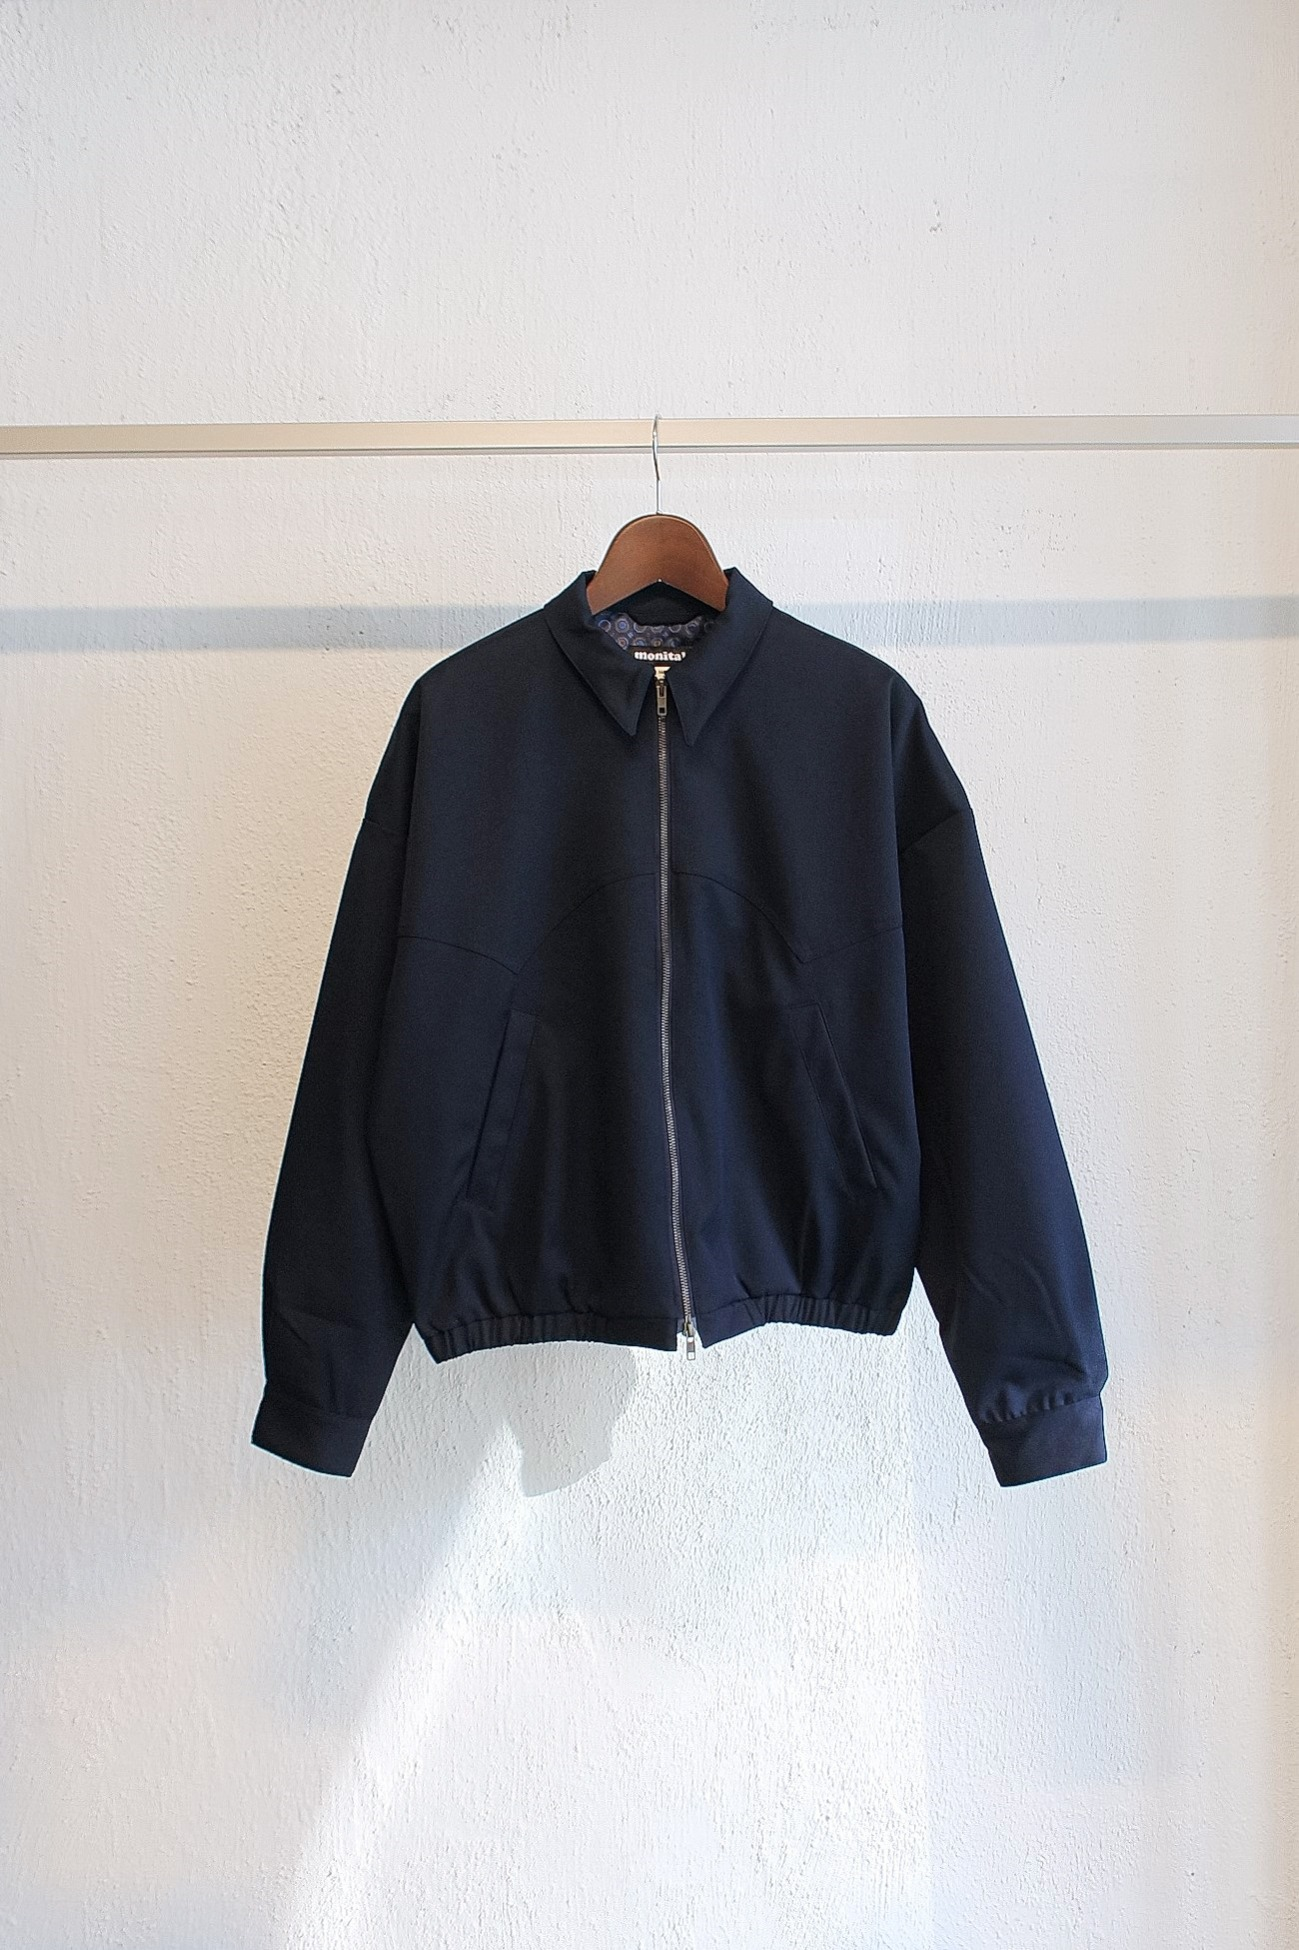 [Monitaly] Western Drizzler Jacket - Nova Stretch Navy